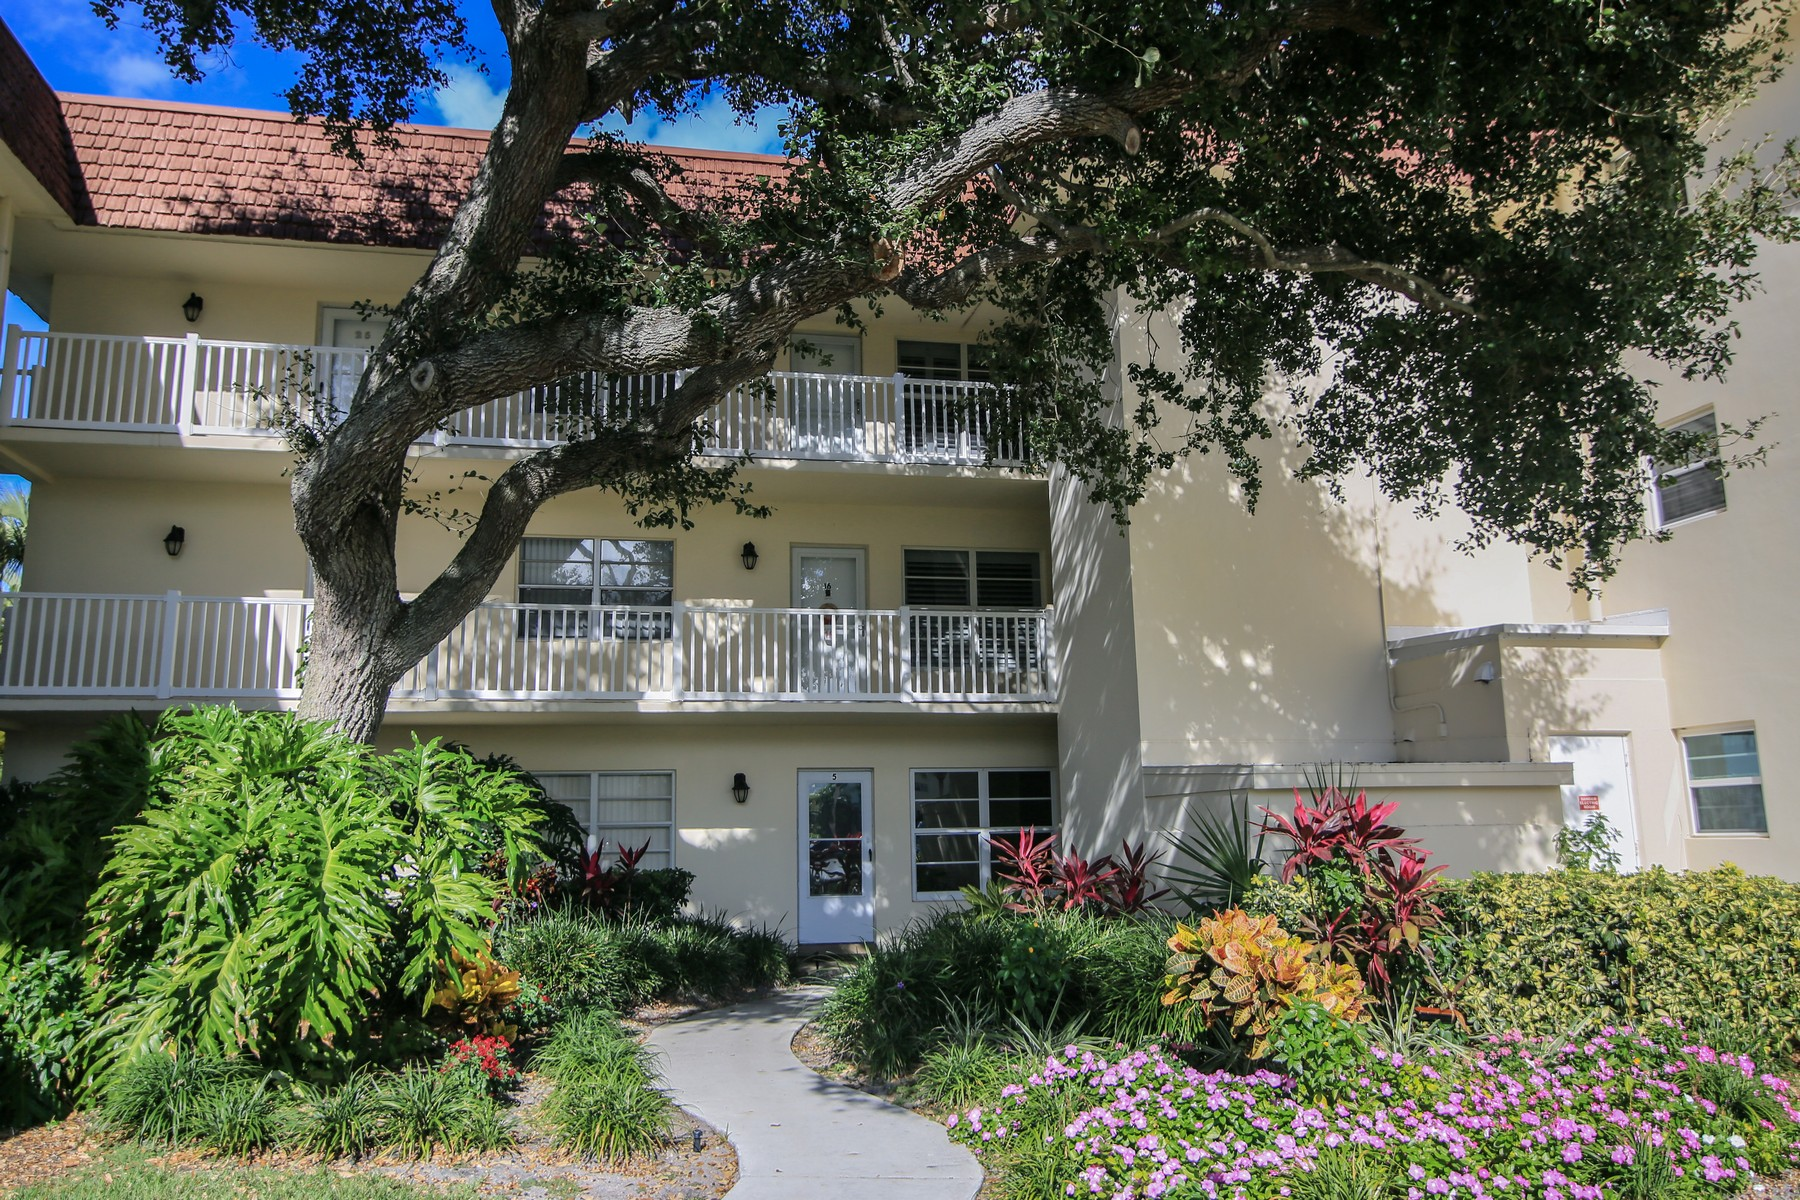 Condominium for Sale at Oceanside Condo 5400 Highway A1A, #B26 Indian River Shores, Florida 32963 United States